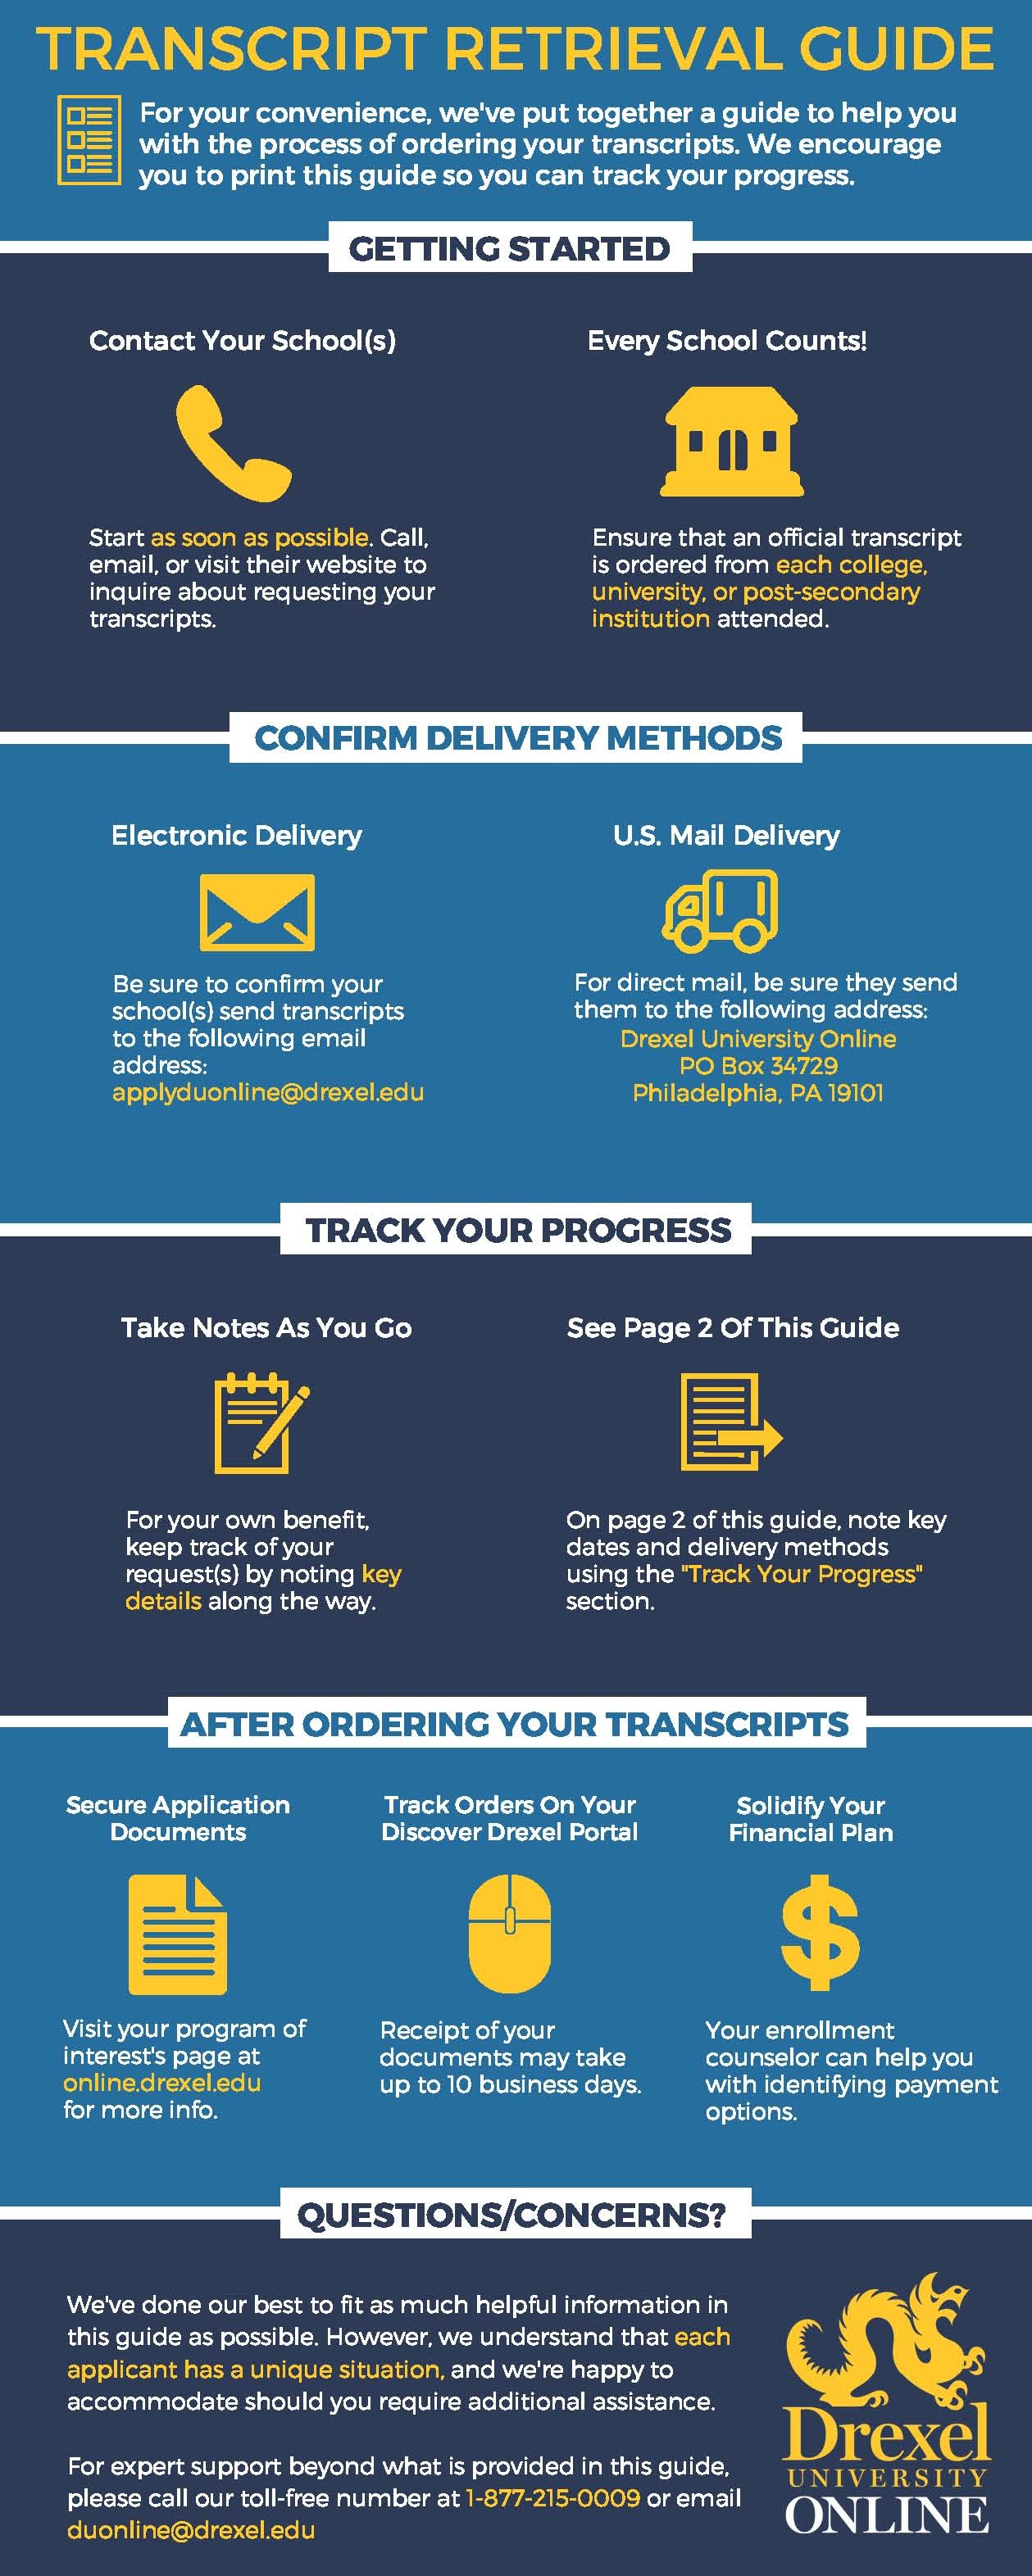 Infographic helping prospective online students requesting transcripts. Created by Drexel University Online.